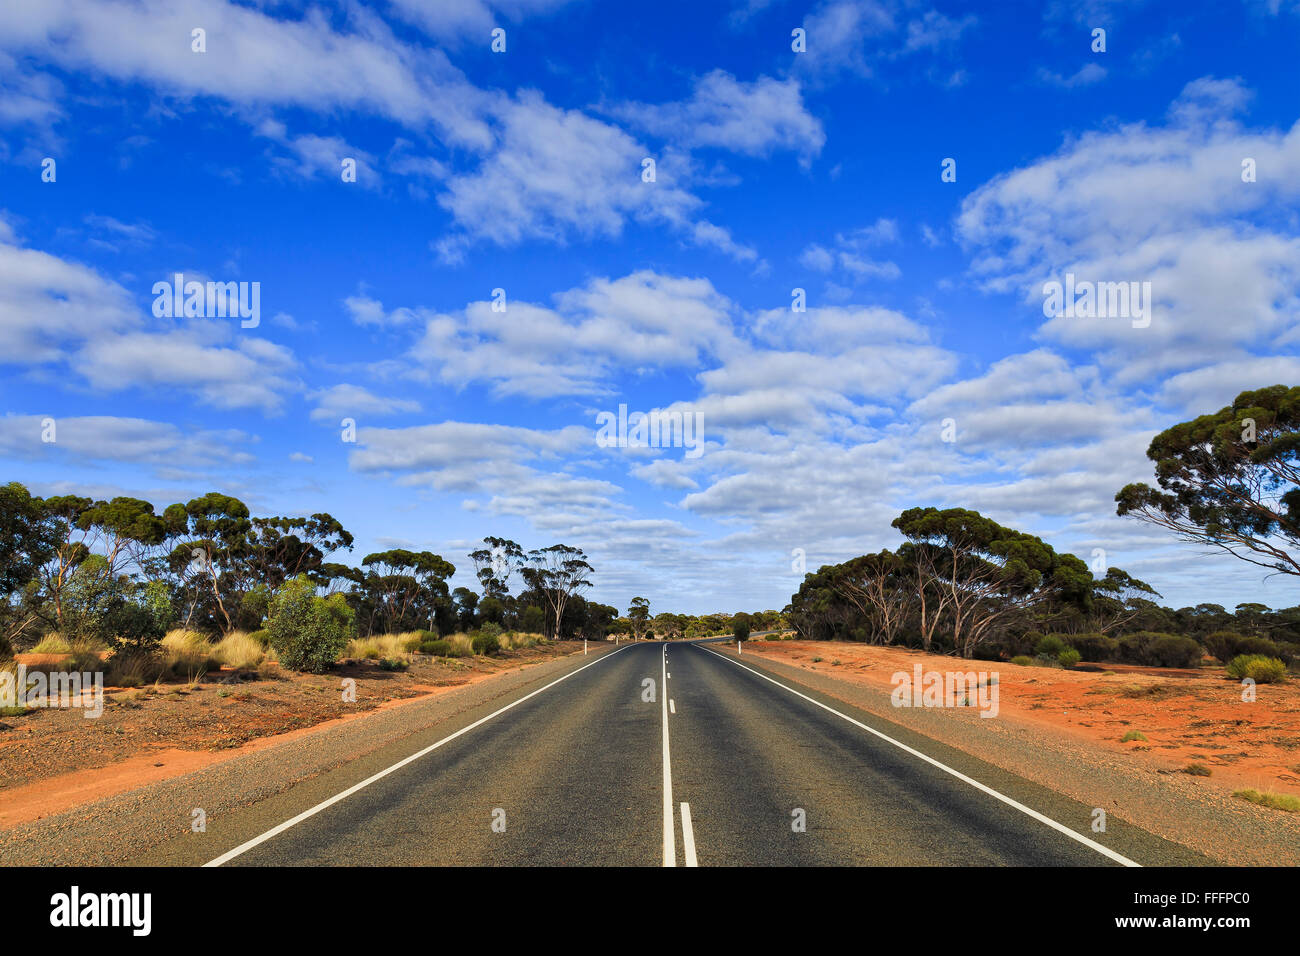 empty wide tarmac highway in Western Australia diminishing at the horizon under blue sky - Stock Image